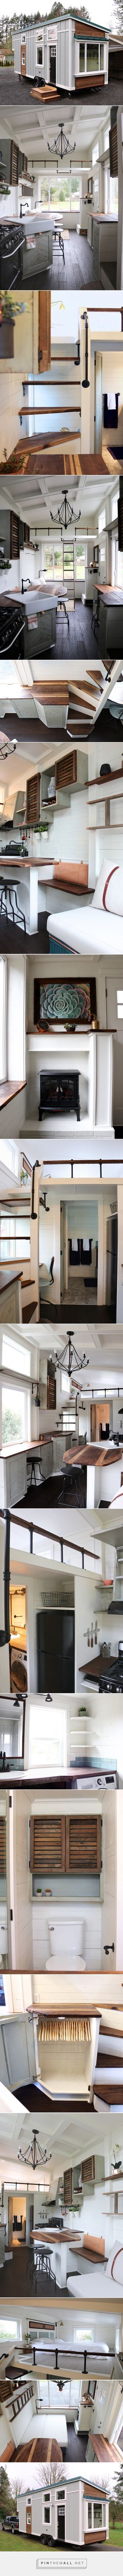 The Getaway – Tiny House Swoon... - a grouped images picture - Pin Them All